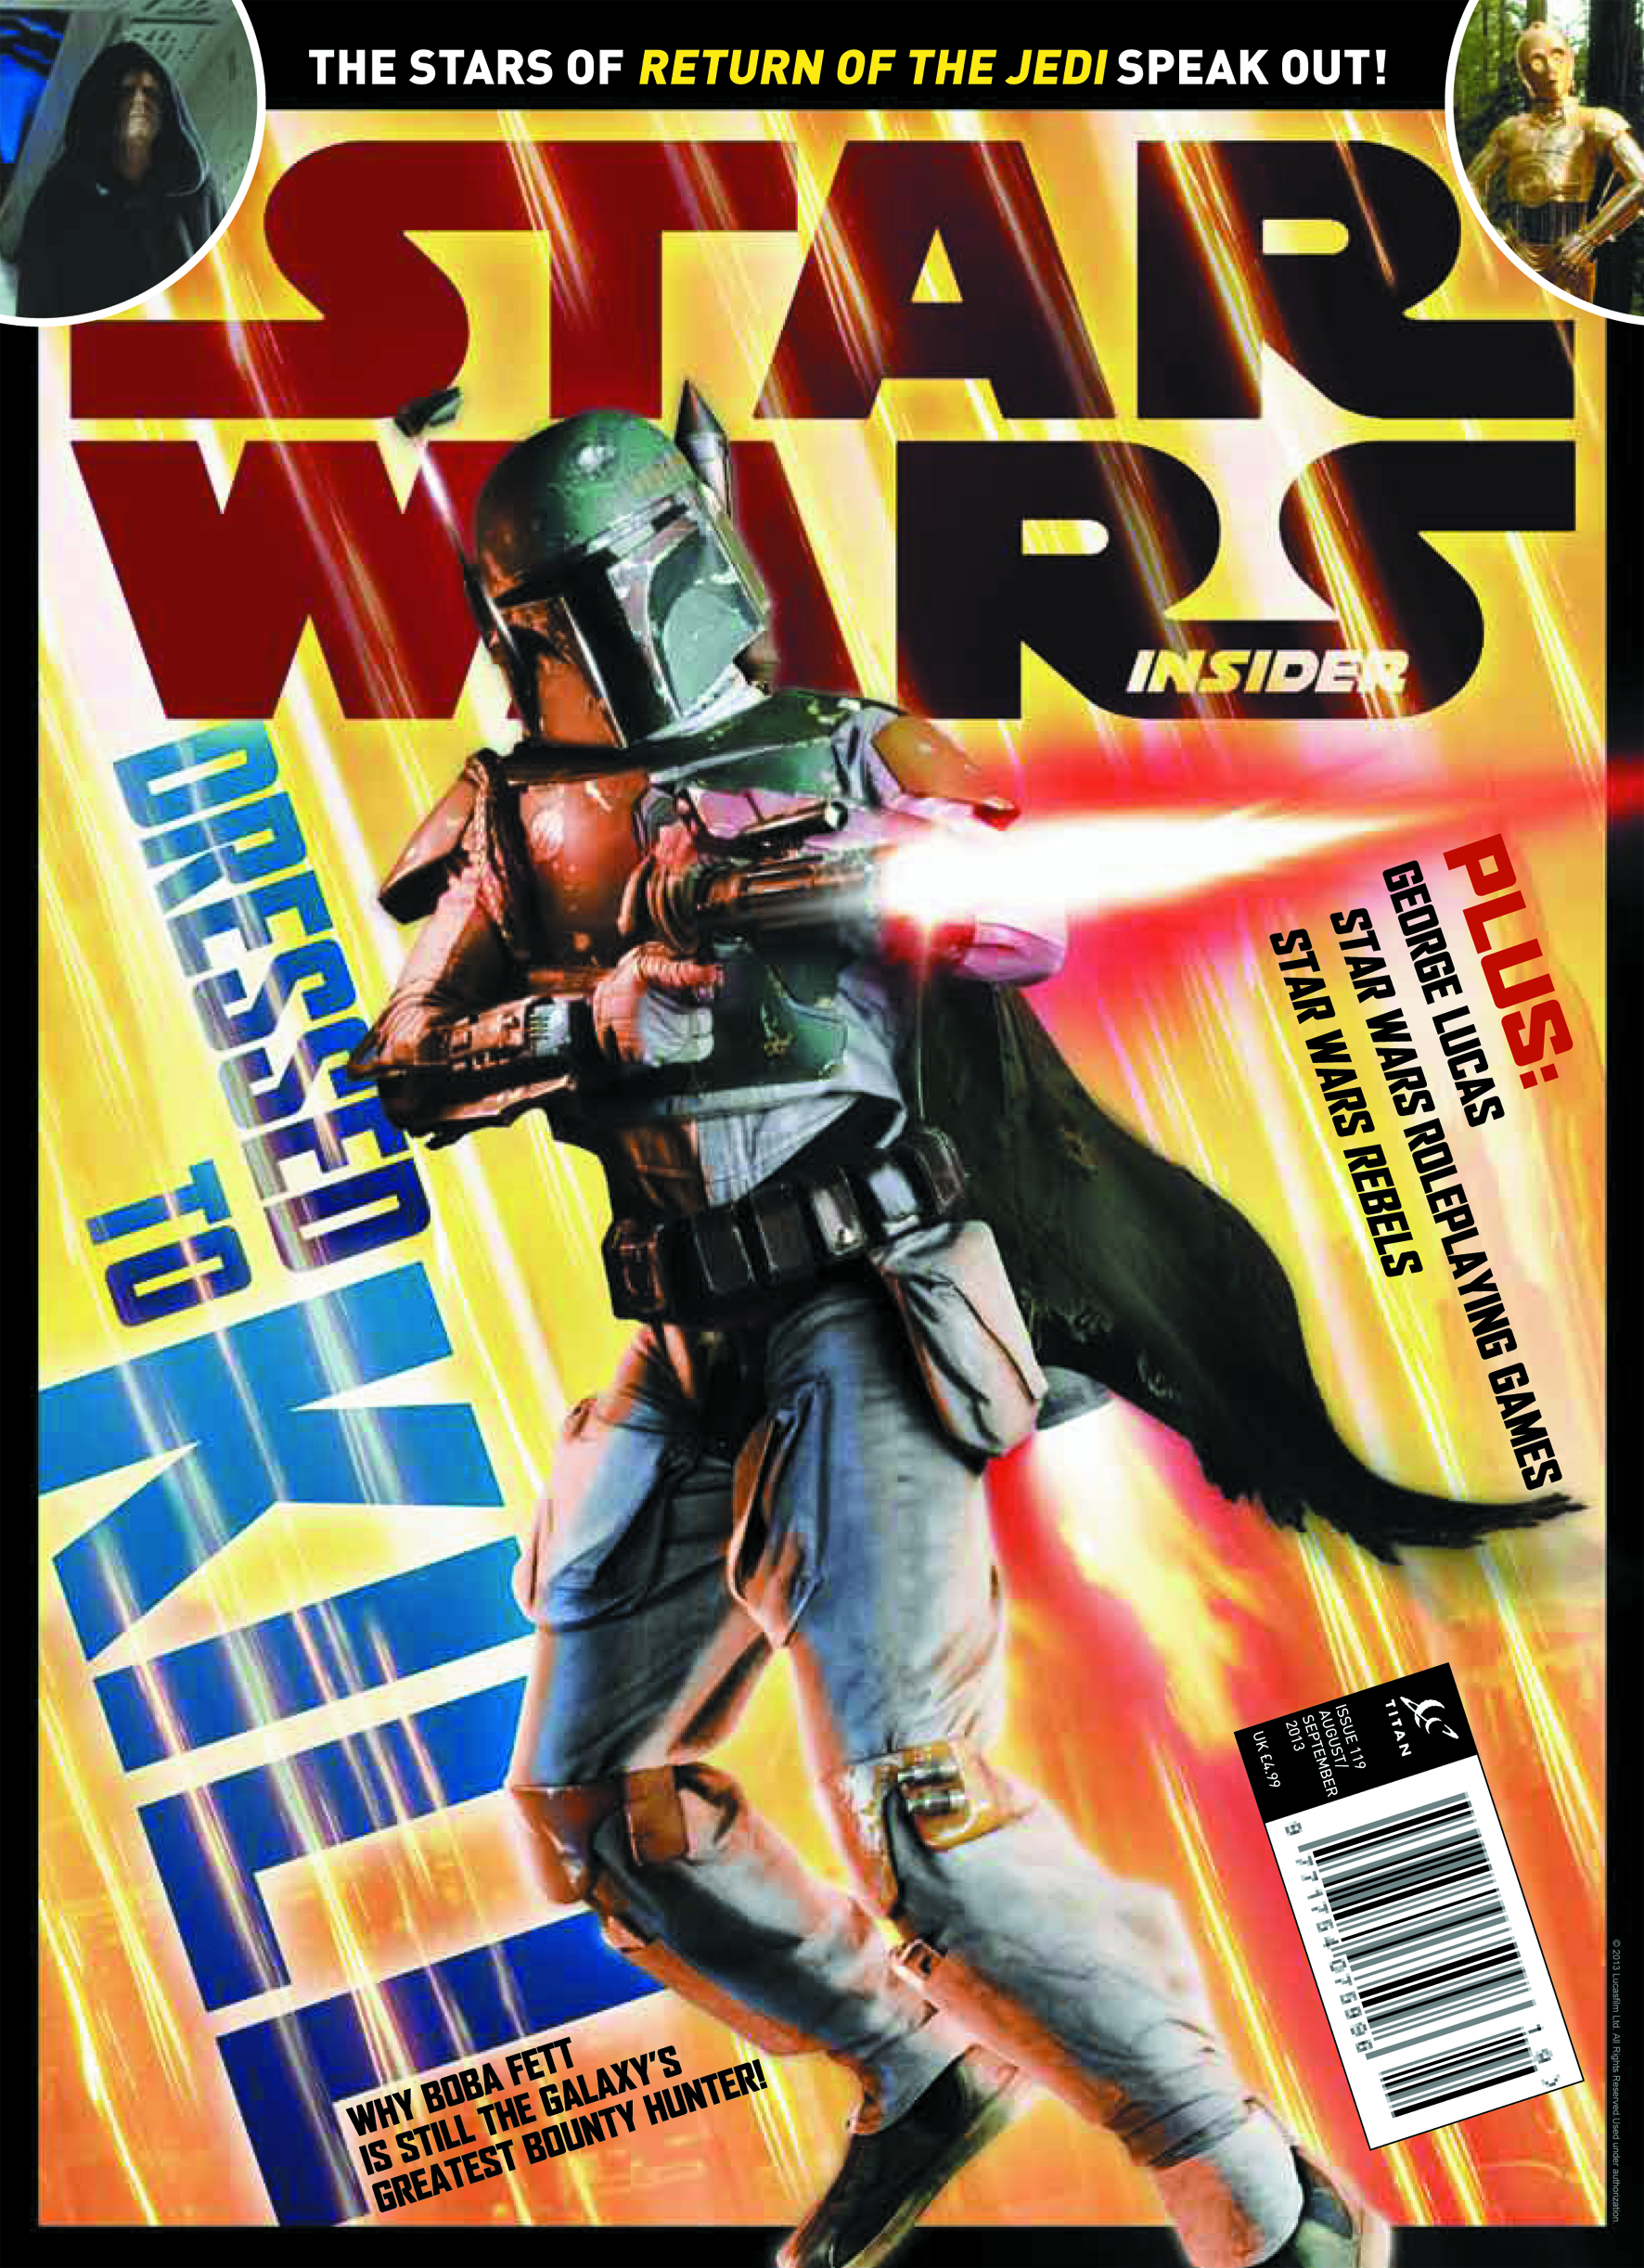 STAR WARS INSIDER #146 NEWSSTAND ED